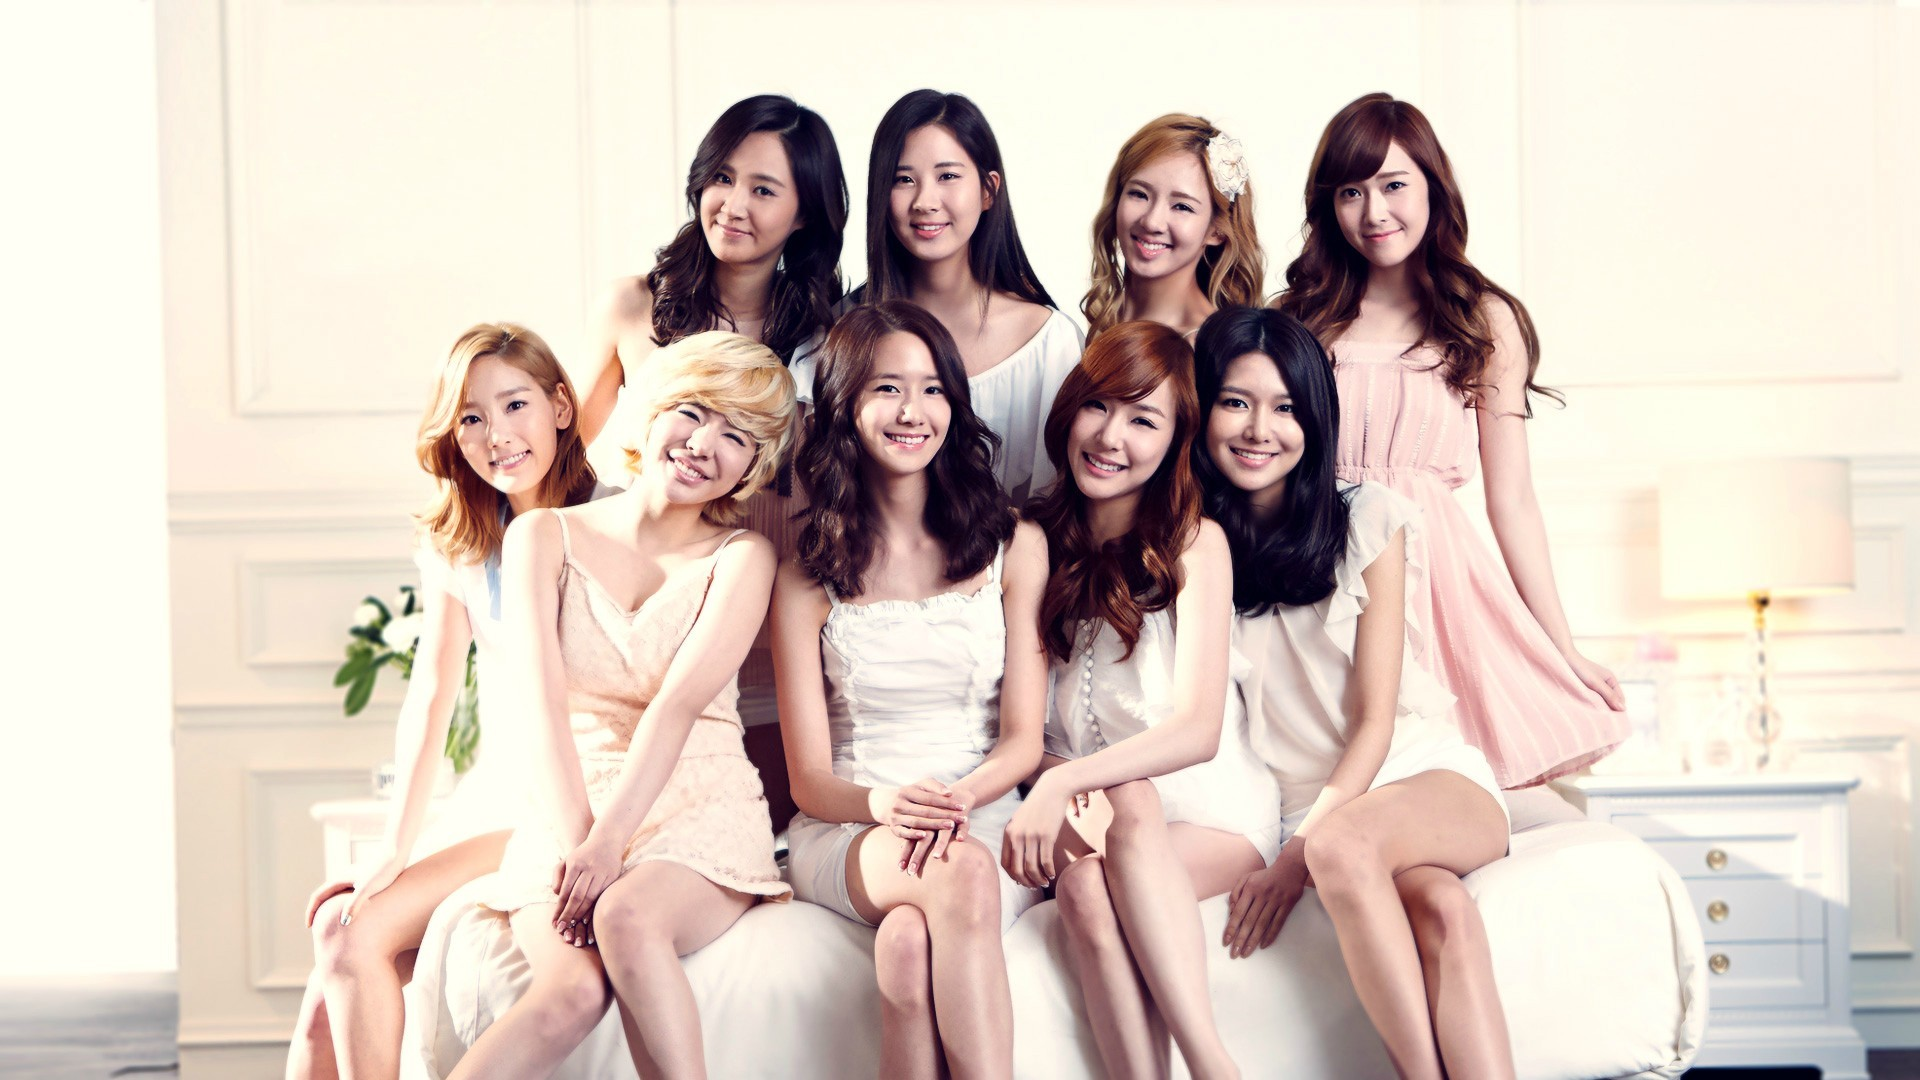 1920x1080 Wallpaper SNSD Foto Personil Girls Generation My image Snsd Wallpaper  Wallpapers)